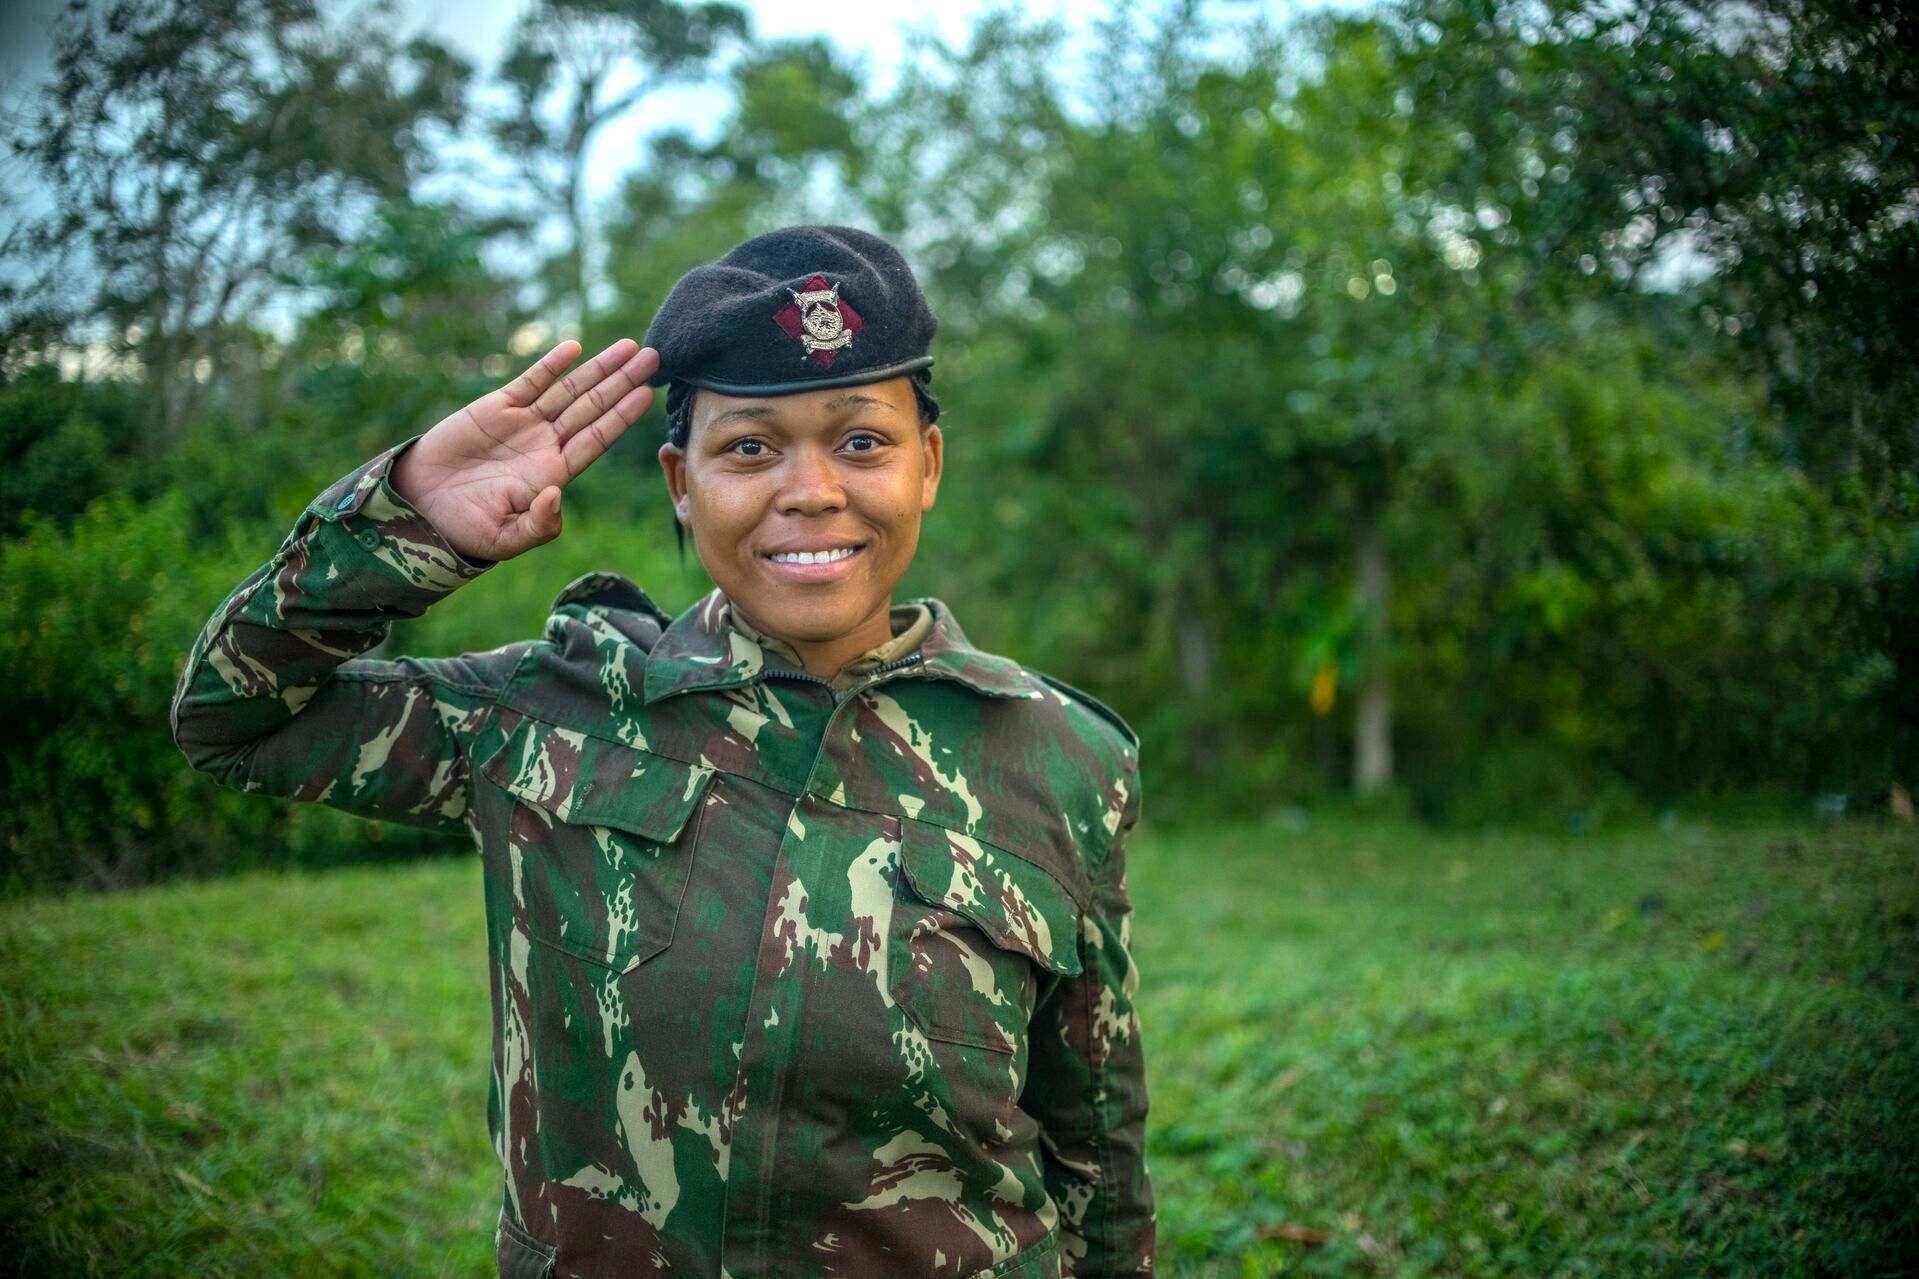 Miriam is pictured here in her uniform - a camoflauge top and green pants. She is wearing a hat. She is smilimg at the camera and saluting, and there are trees in the background.